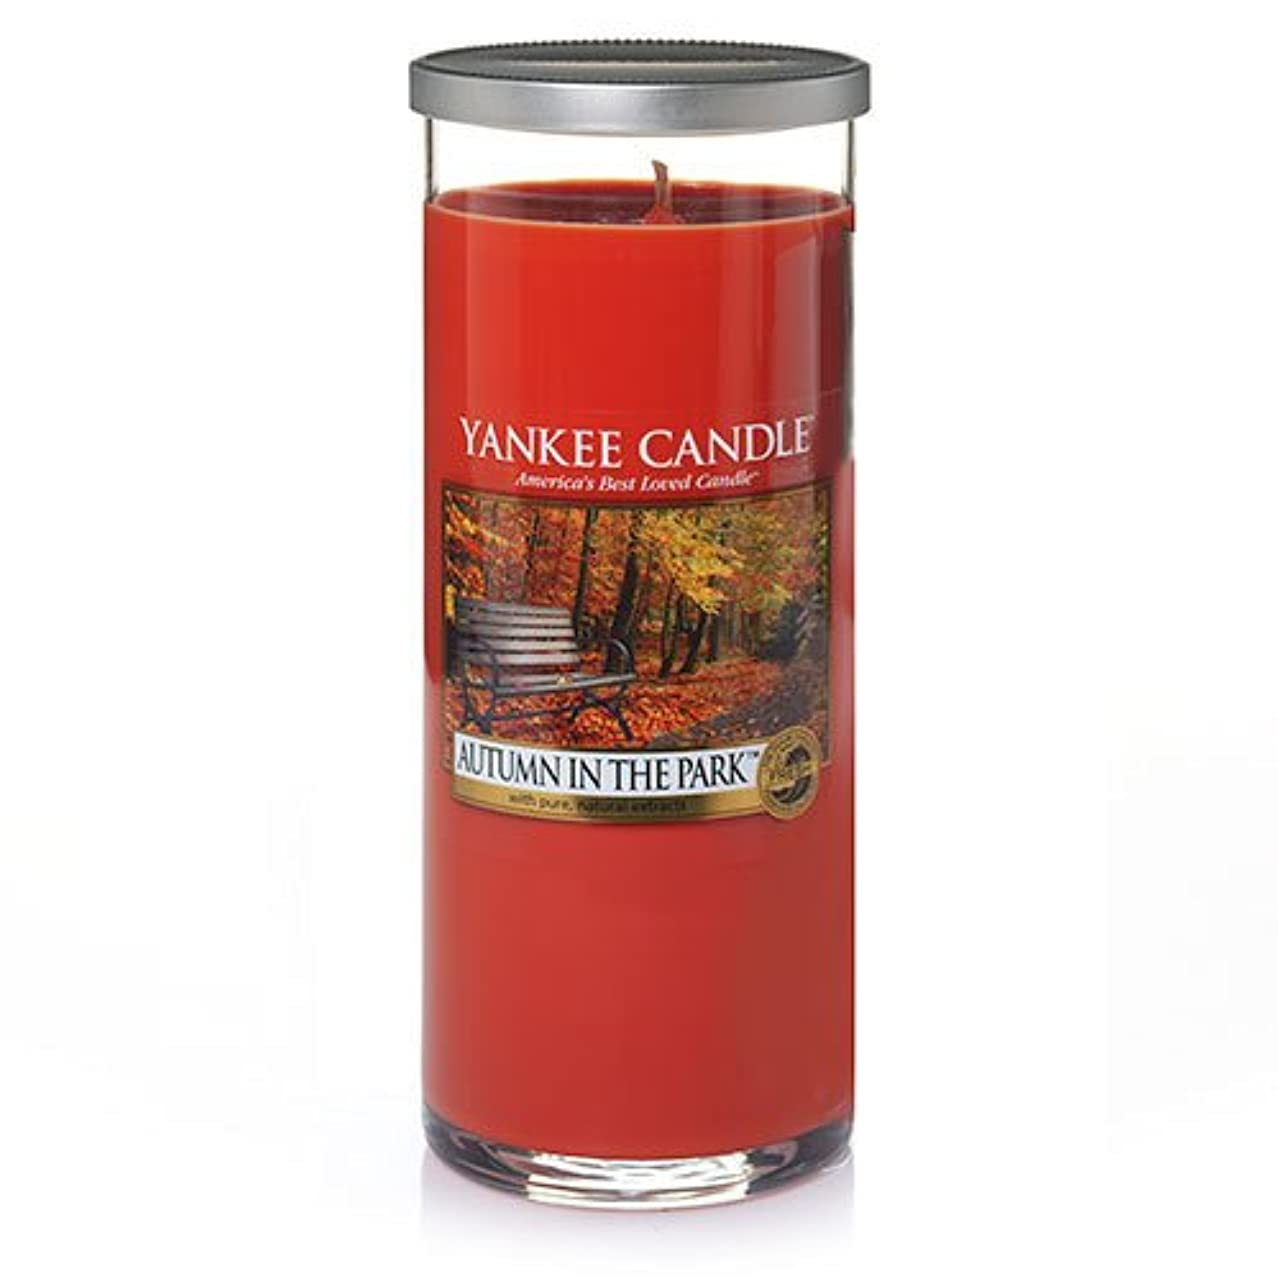 苦しみ苦しみ直感Yankee Candle Autumn In The Park Large Perfect Pillar Candle、新鮮な香り